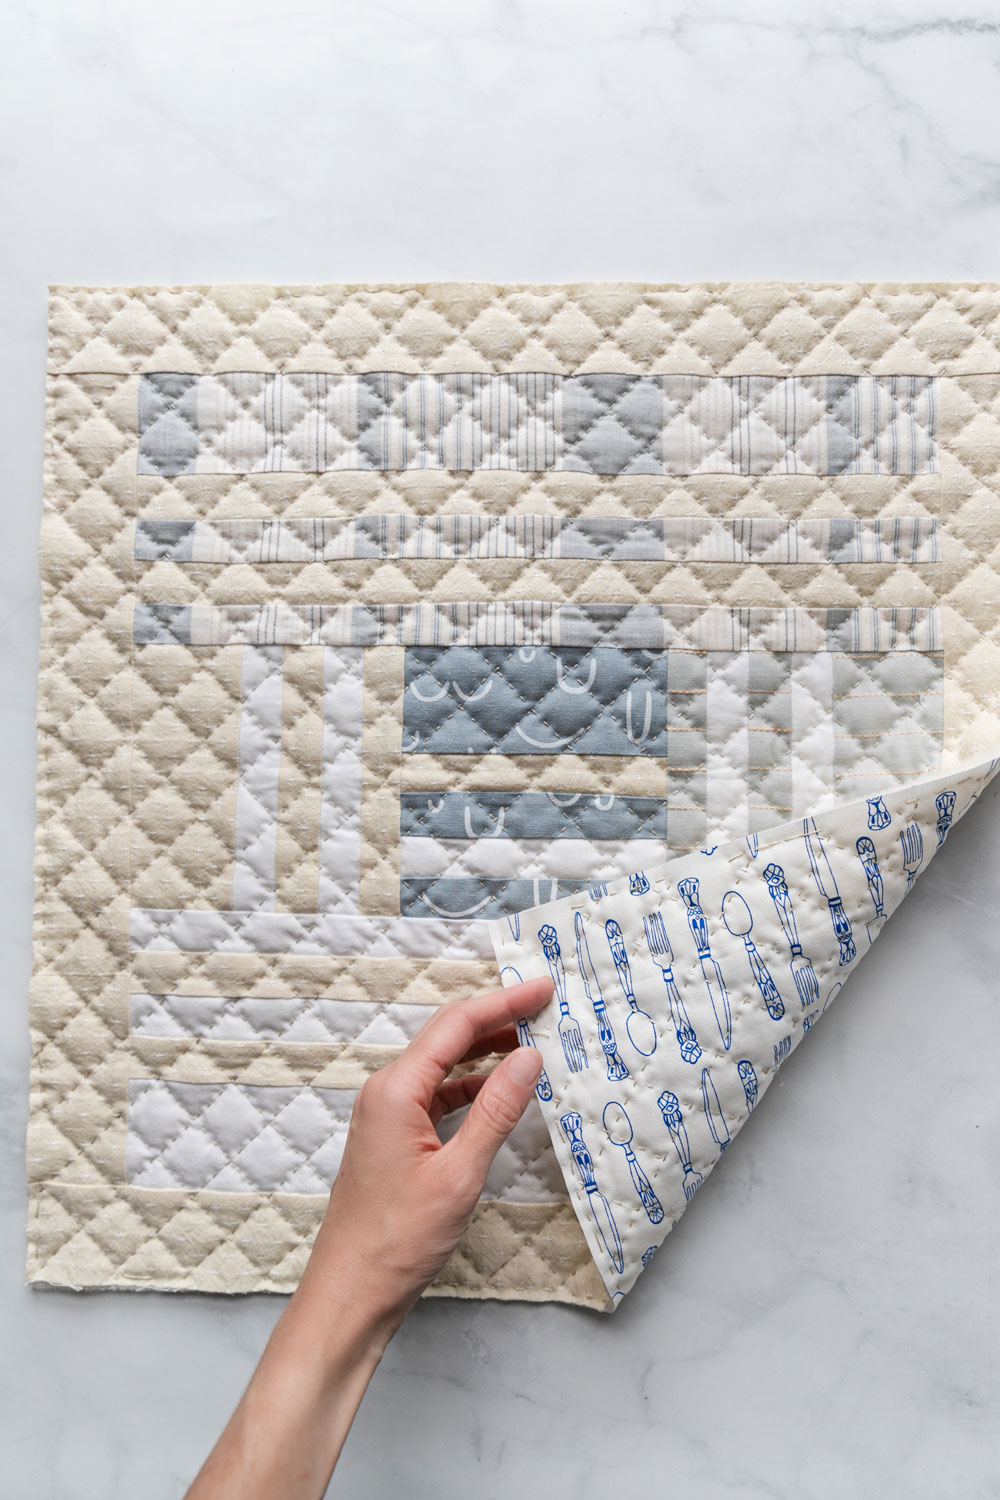 In this easy, beginner friendly quilting tutorial you will make a beautiful pillow with a simple envelope pillow cover. At the end there will be an option to finish the quilted pillow with binding | suzyquilts.com #pillowtutorial